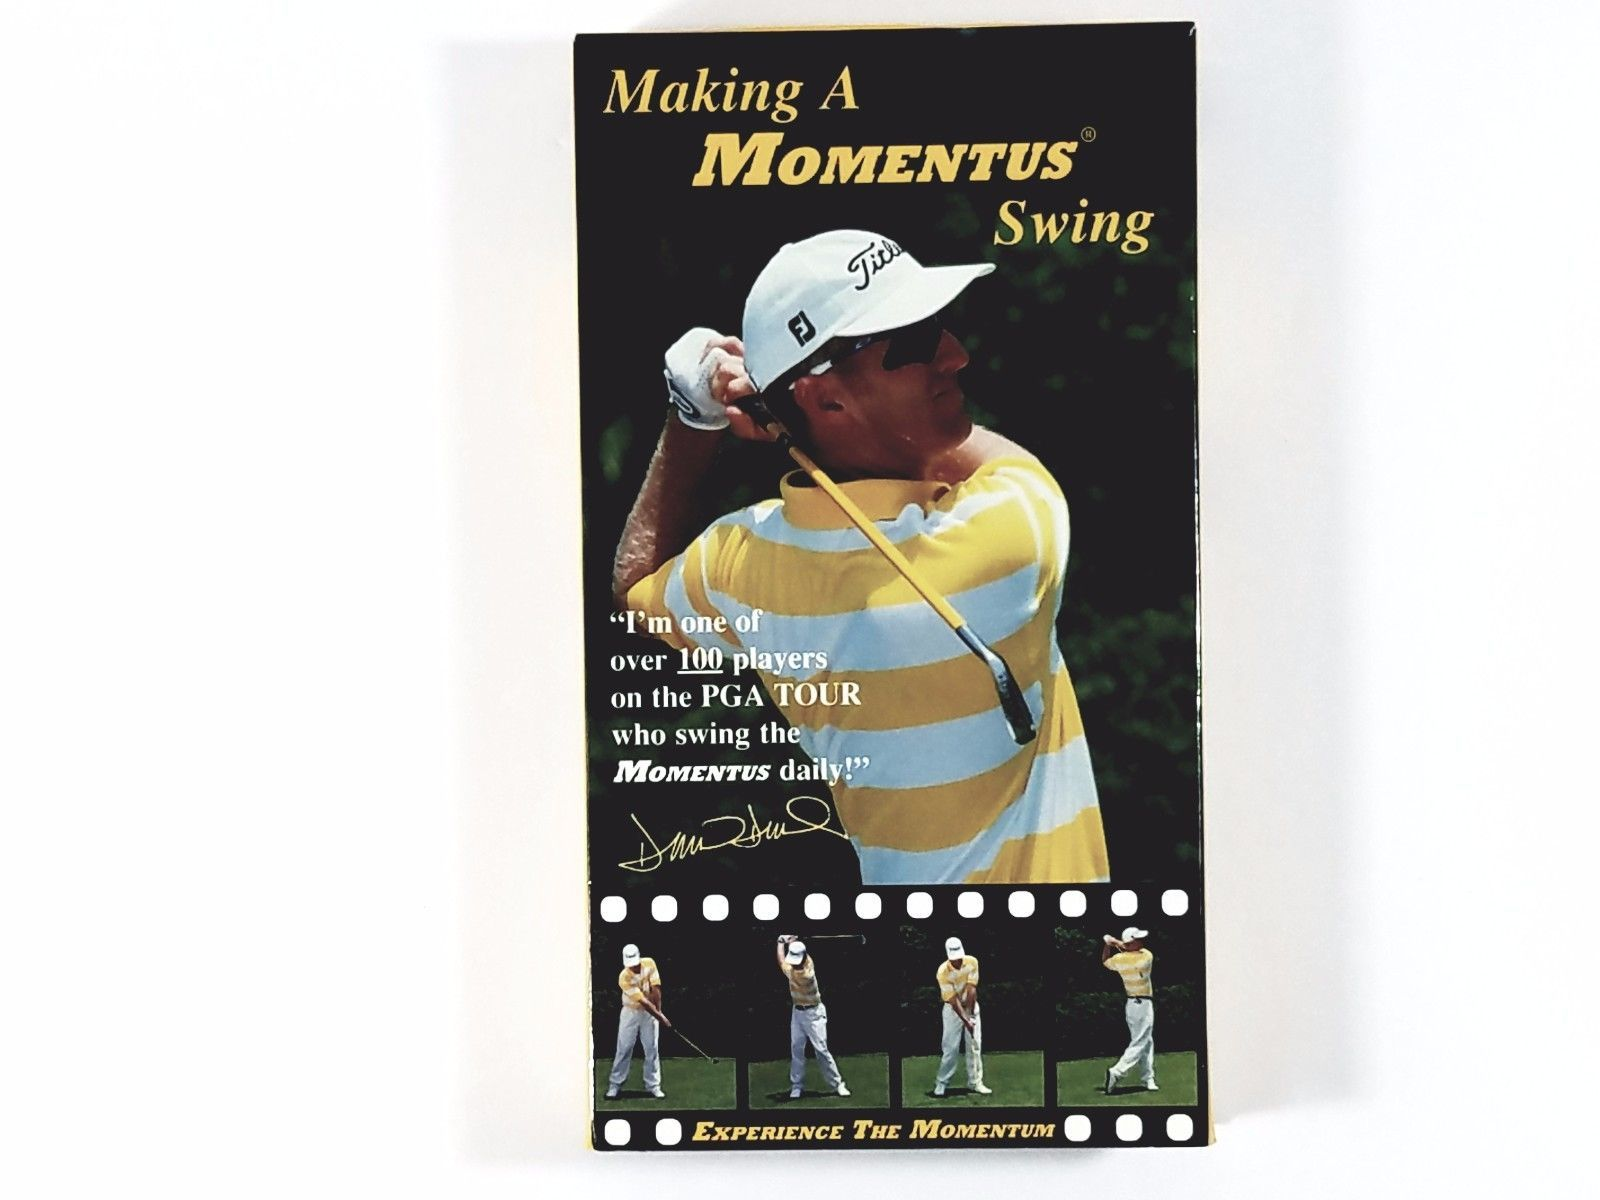 Primary image for Momentus Swing Trainer David Duval Making A Momentus Swing VHS Golf Video